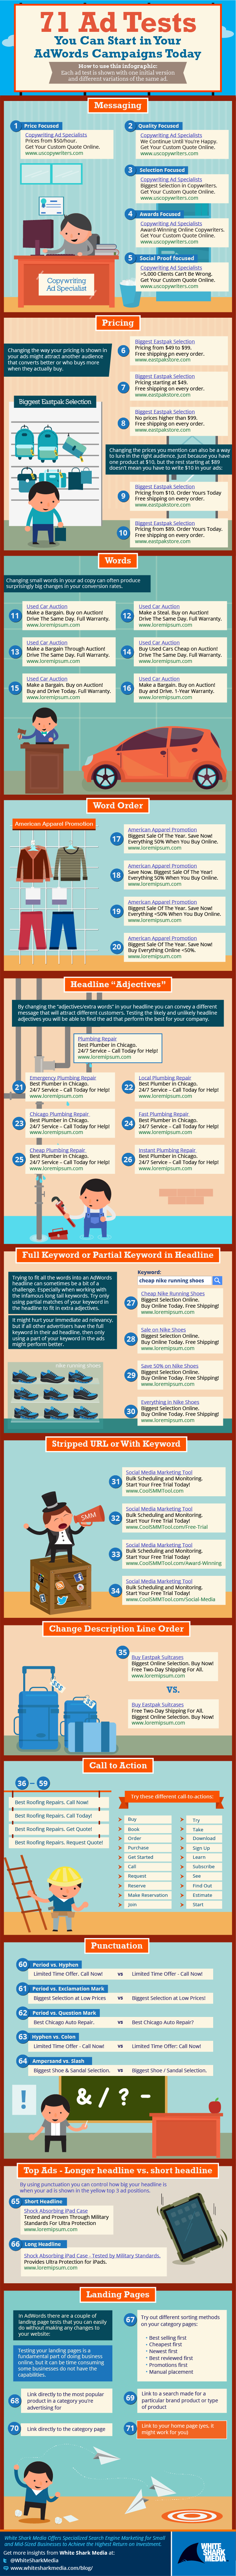 71 Ad Tests You Can Try in Your AdWords Campaigns Today [Infographic]